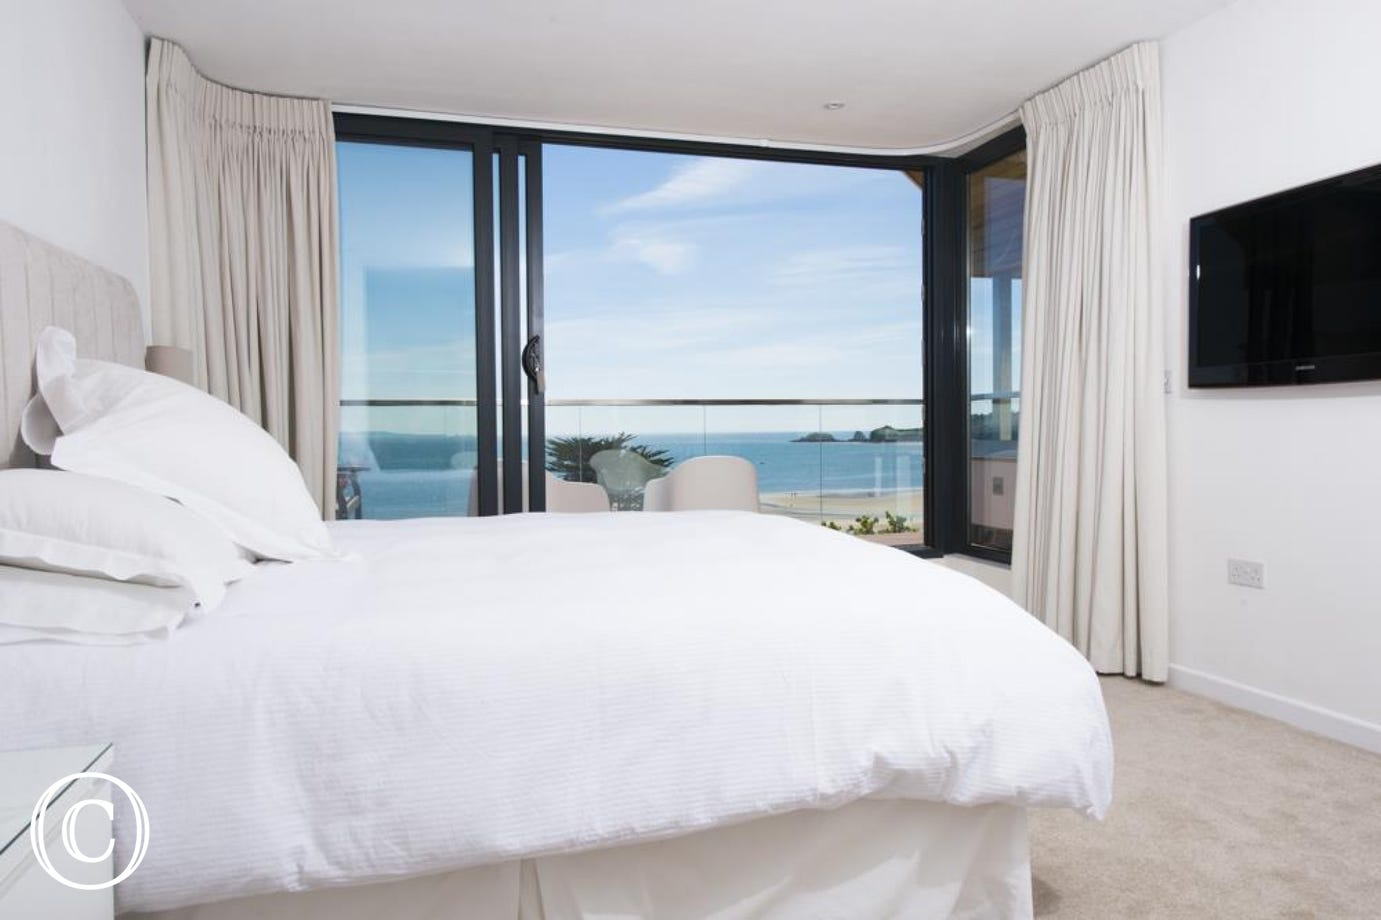 Master suite with splendid coastal views and large balcony